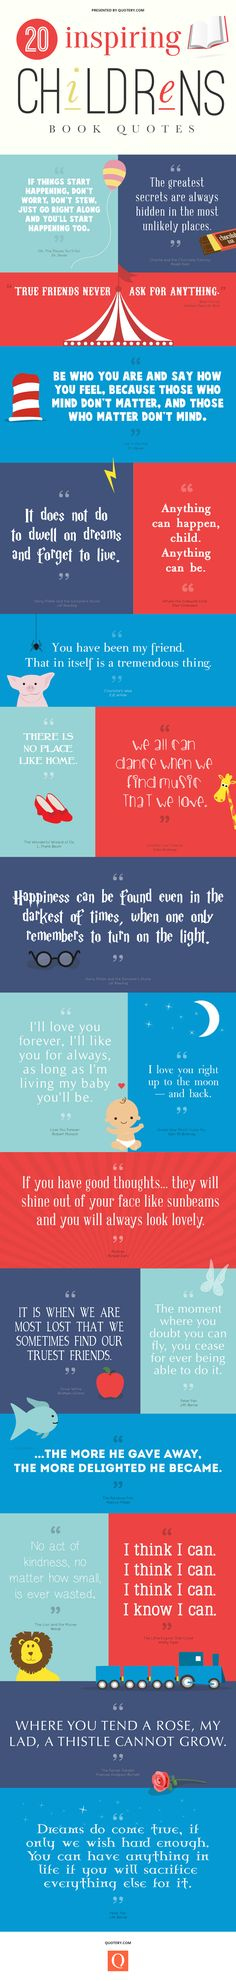 20 Inspiring Childrens Quotes put together in a graphic designed infographic. Typography #imnotabox